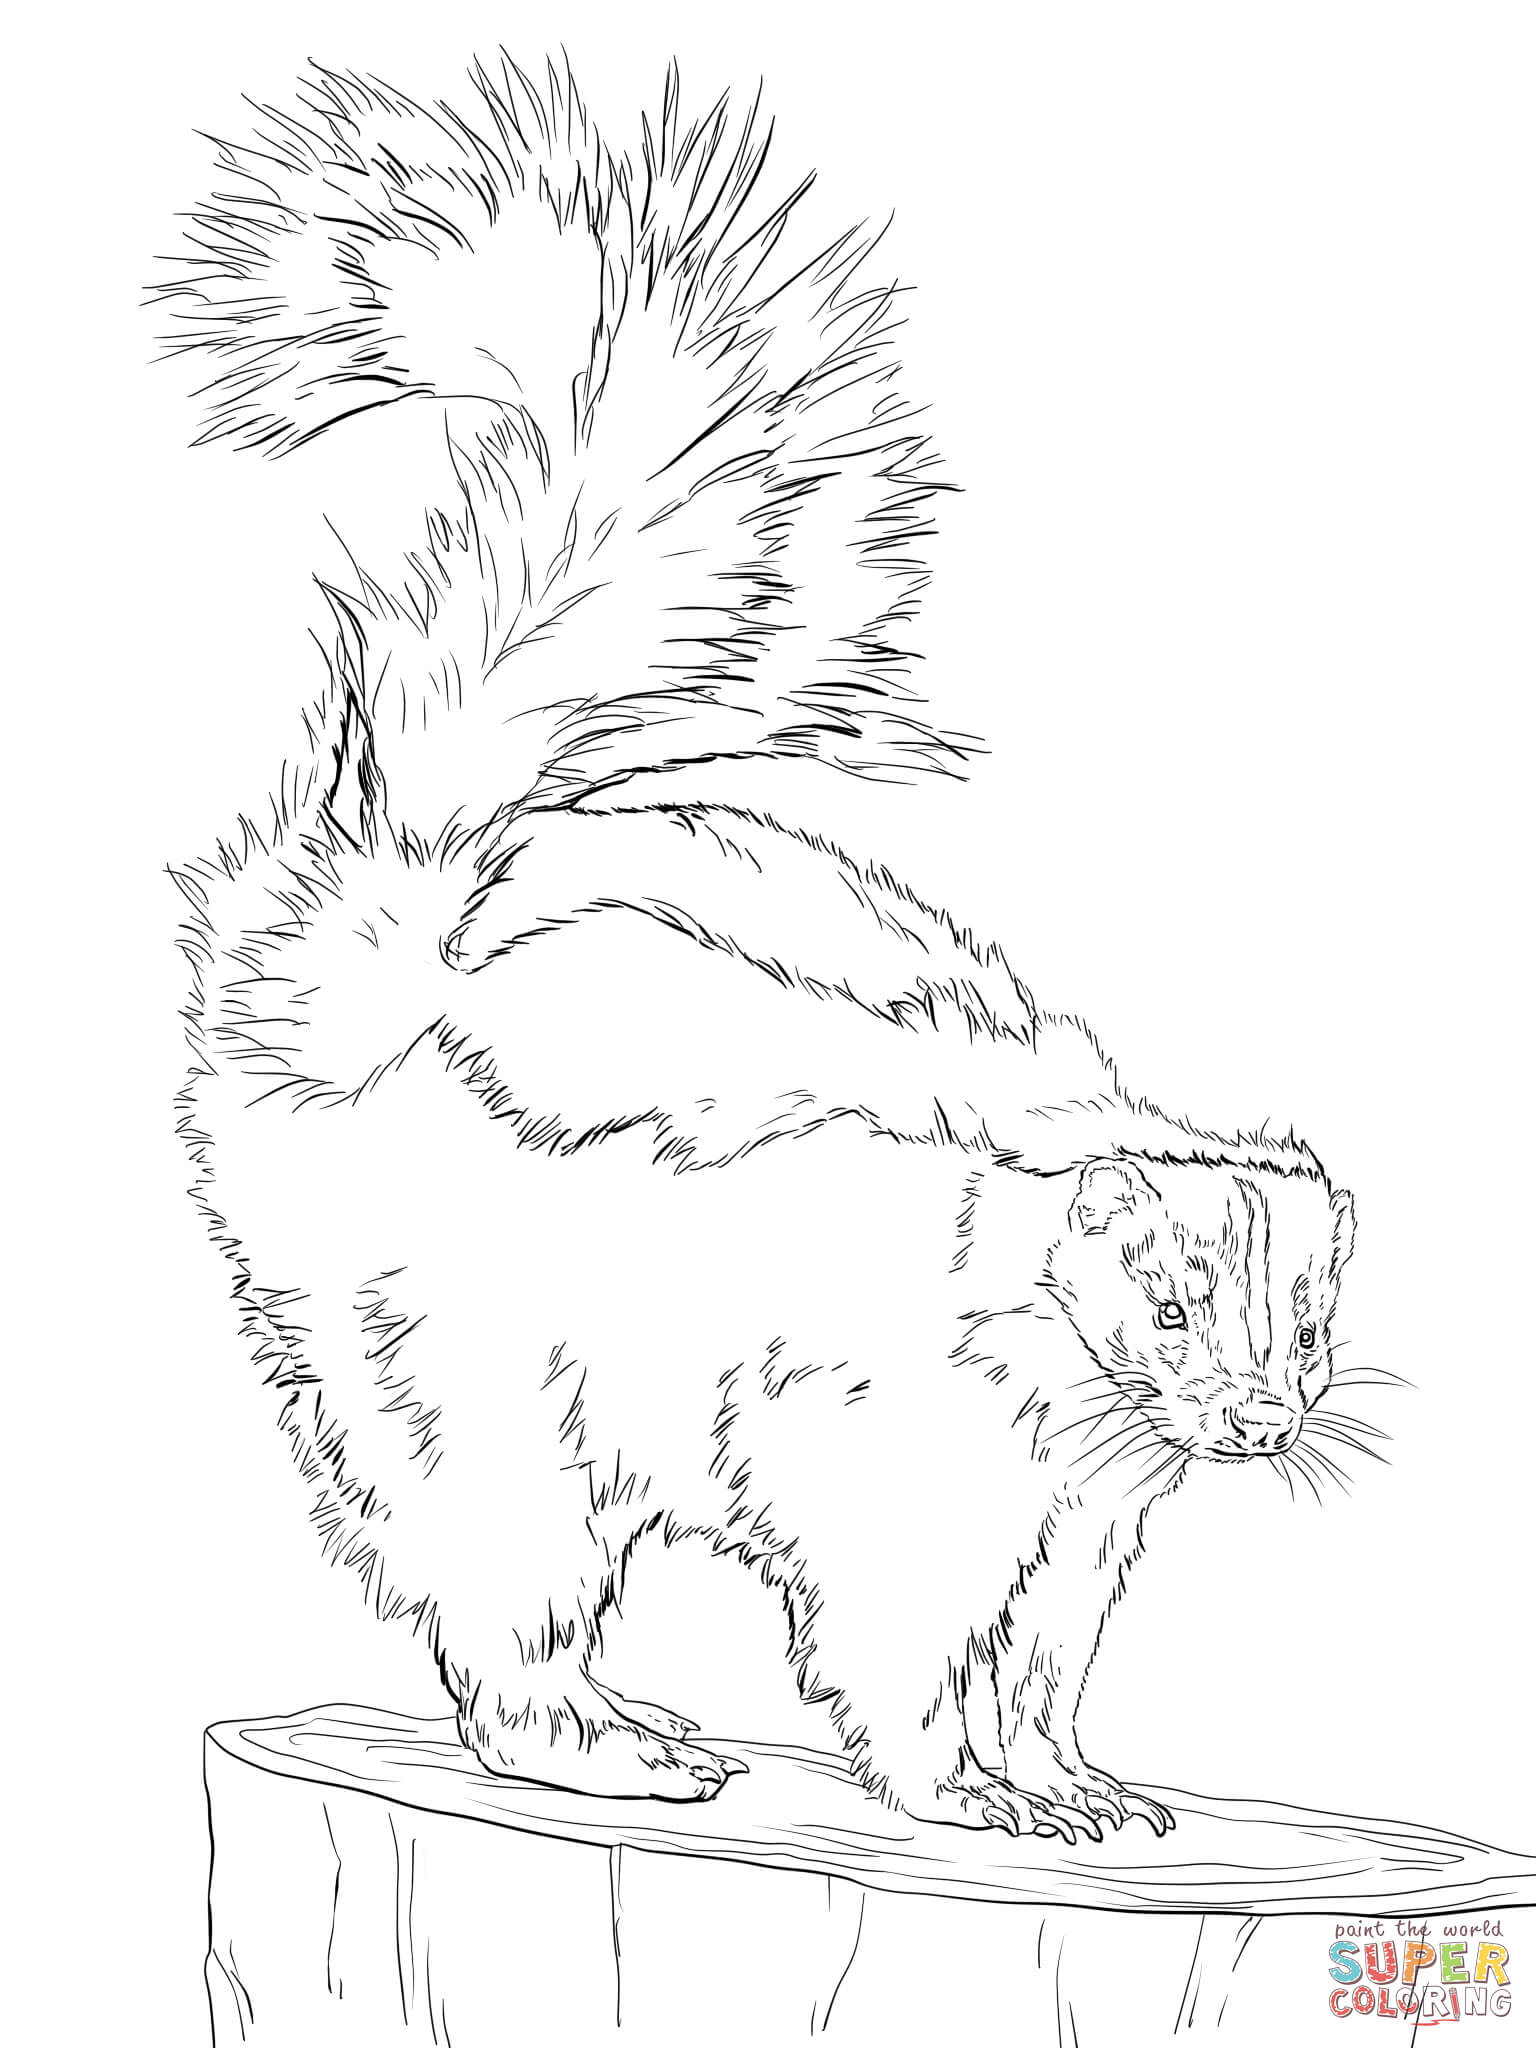 north american striped skunk coloring page supercoloring com